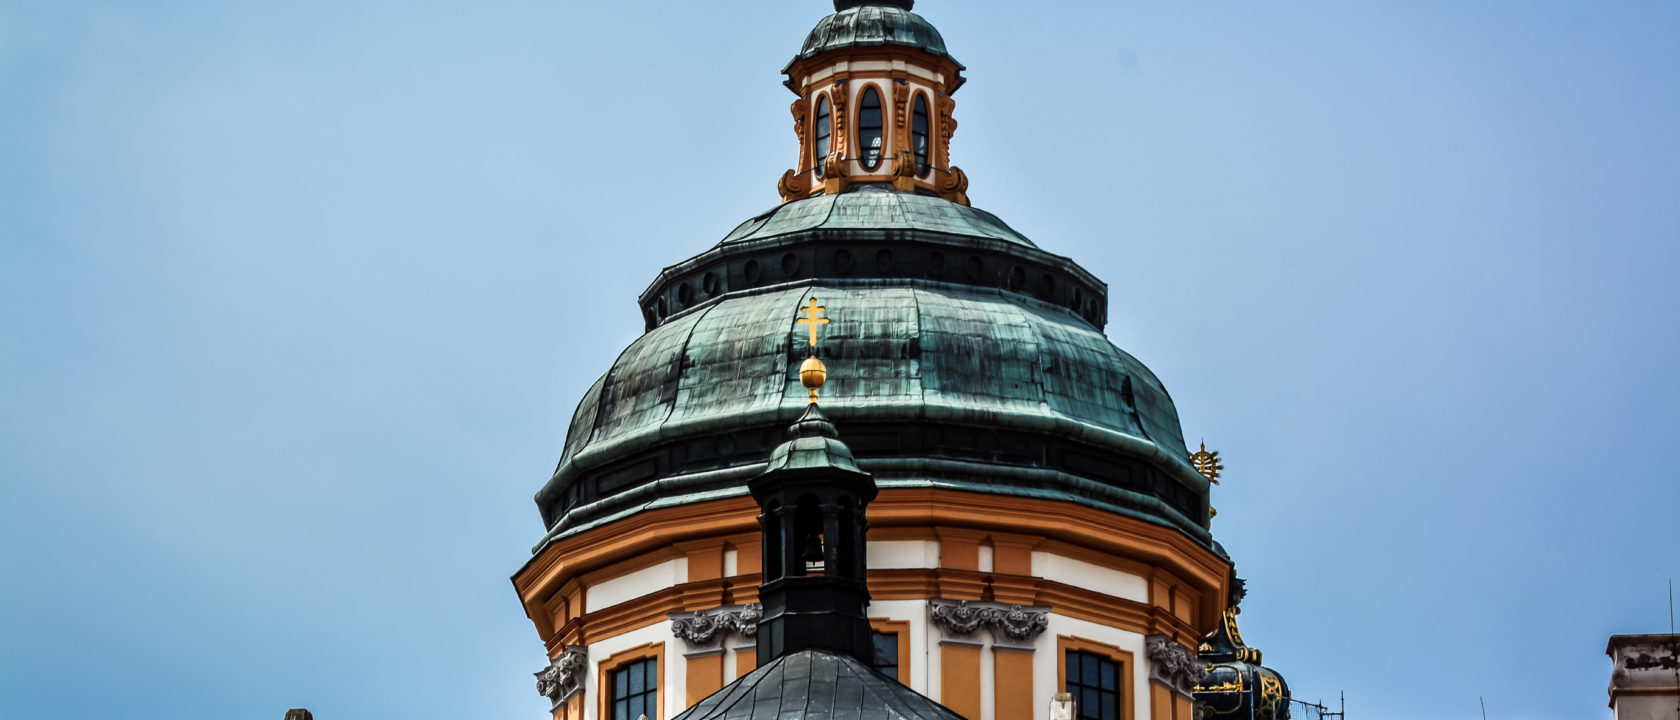 A Day In Melk – 26